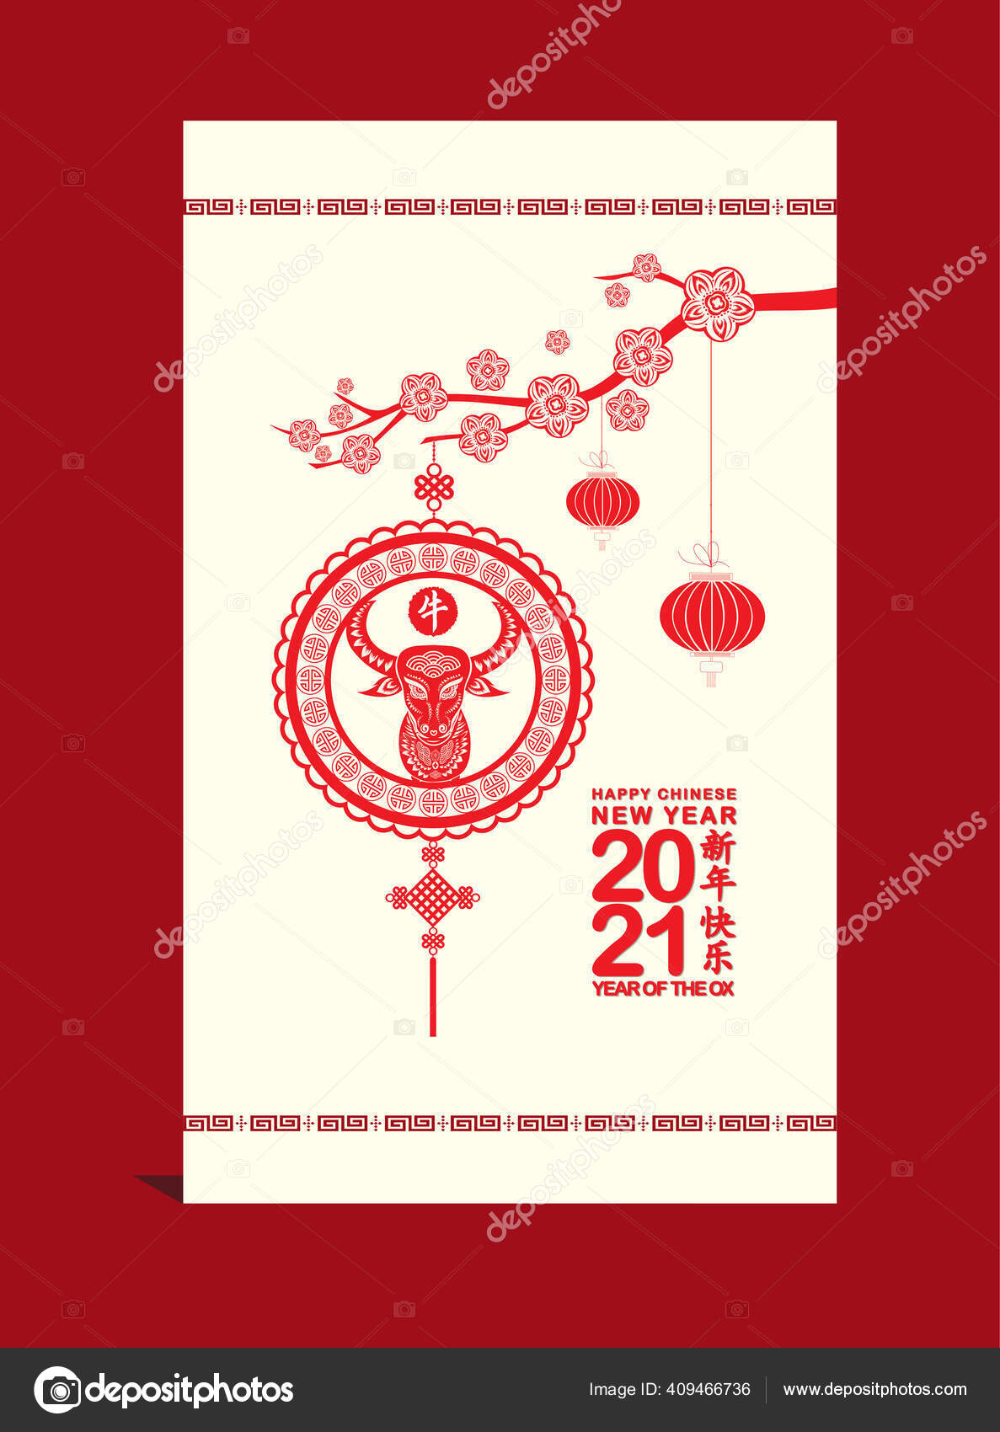 Download Banner Sketch Ox Symbol Chinese Happy New Year 2021 Chinese Translation Happy Chines New Year Symbols Chinese New Year Card Happy Chinese New Year